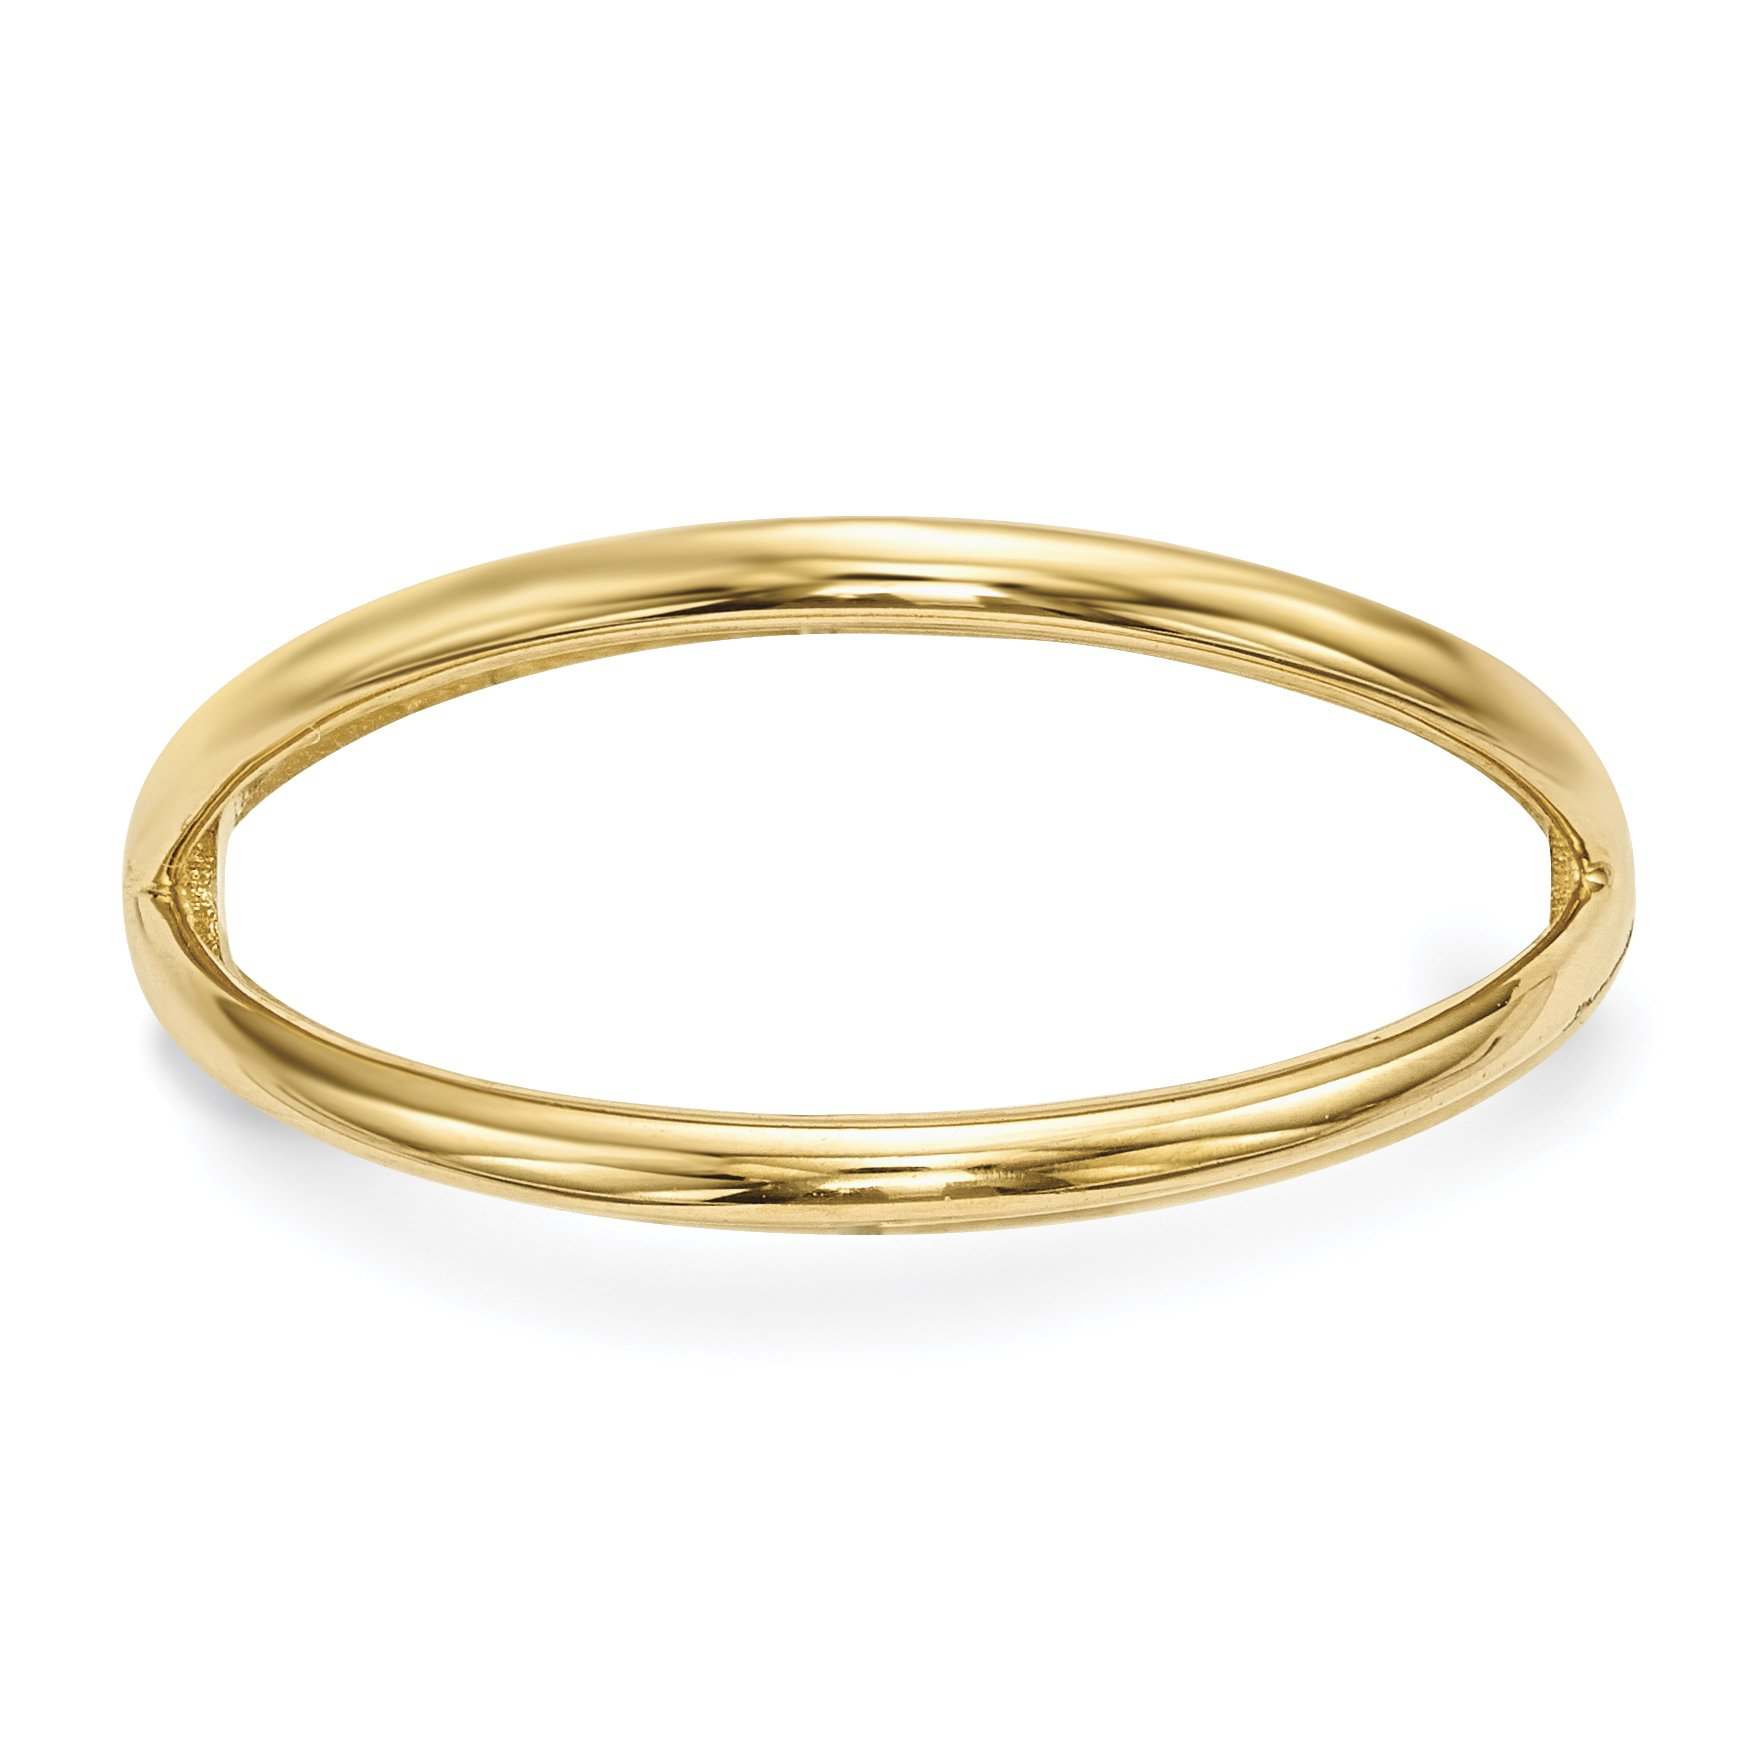 ICE CARATS 14k Yellow Gold Double Band Ring Size 7.00 Fine Jewelry Gift Set For Women Heart by ICE CARATS (Image #2)